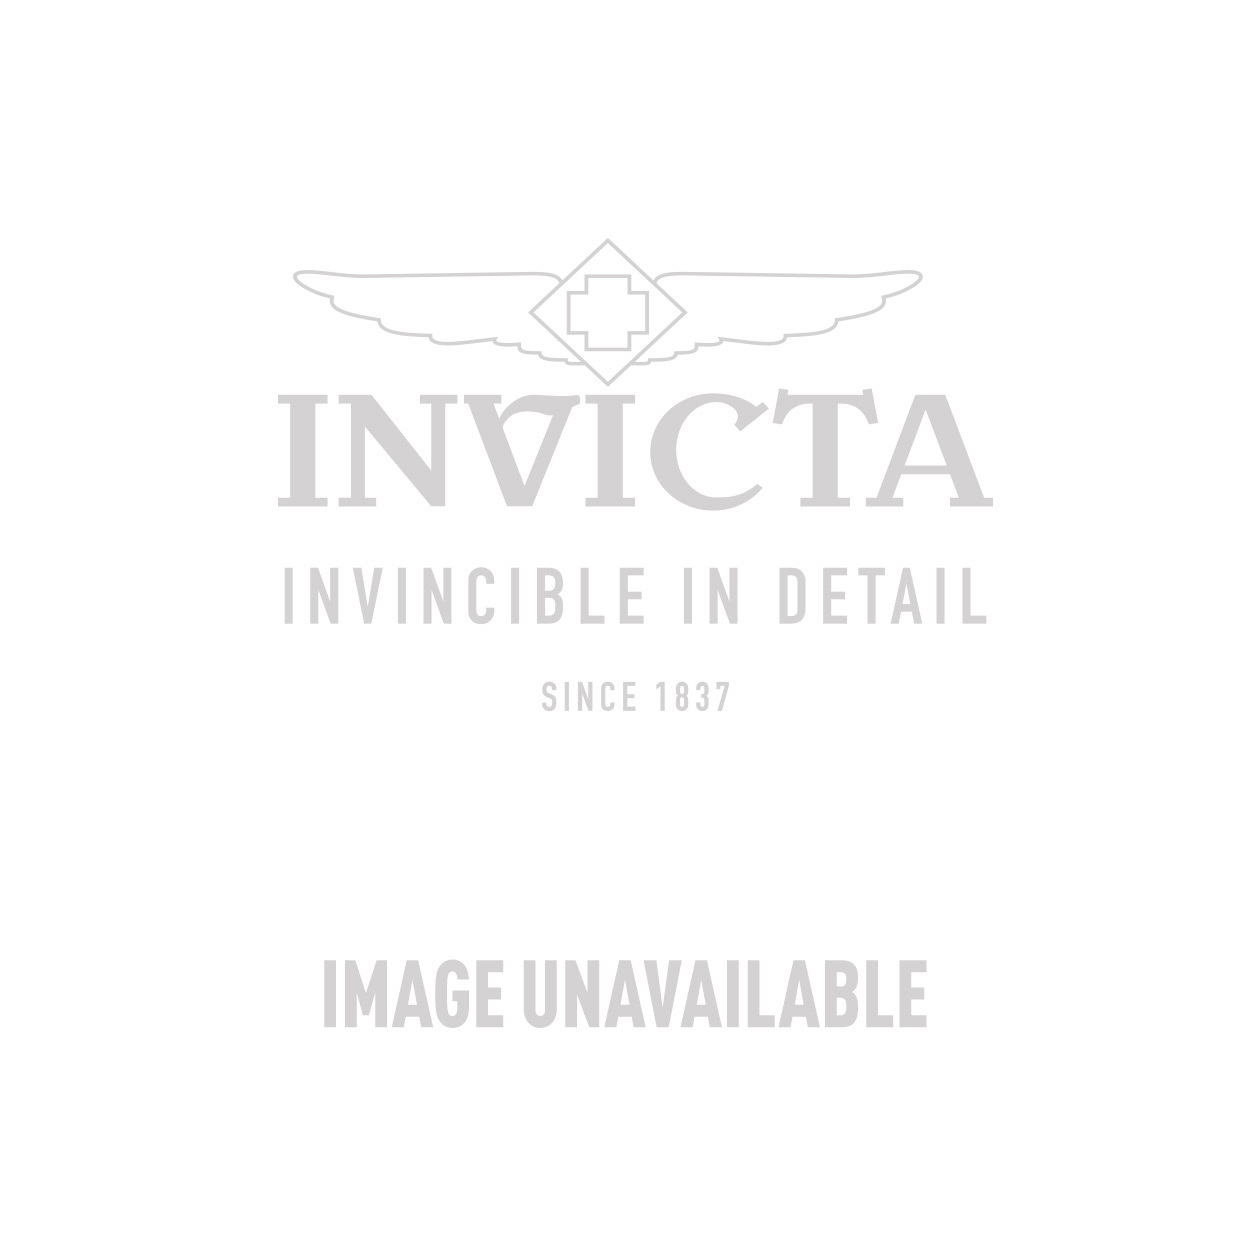 Invicta Excursion  Quartz Watch - Stainless Steel case Stainless Steel band - Model 17468